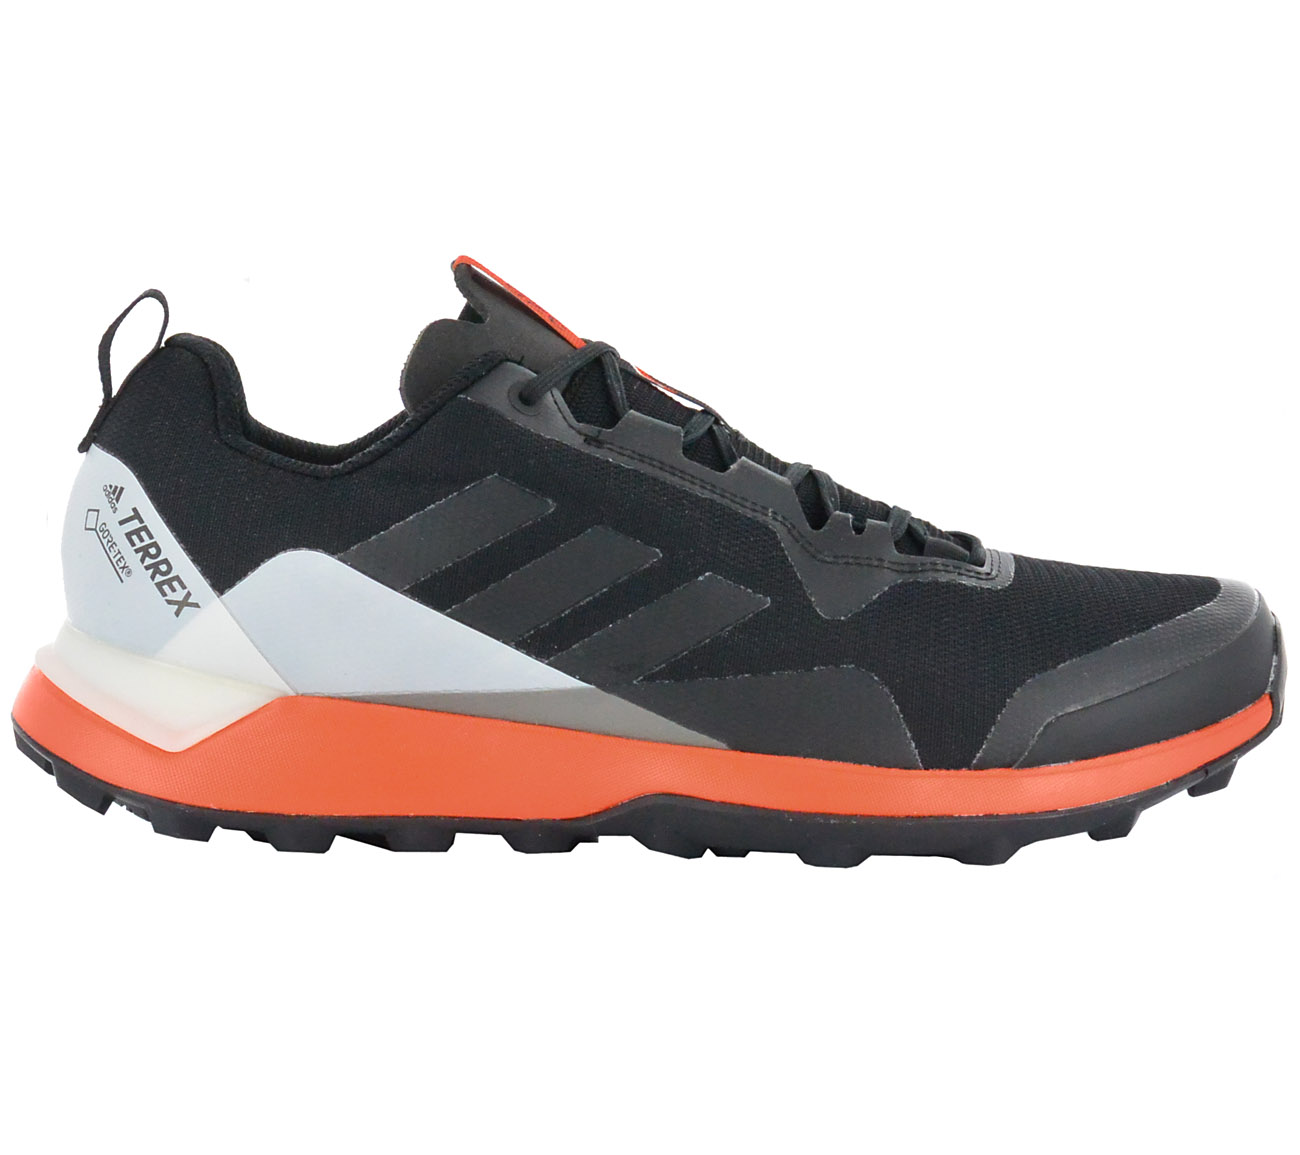 Gtx Tex Adidas Black Cmtk Men's Shoes Trail Gore Hiking Terrex TKJc3lF1